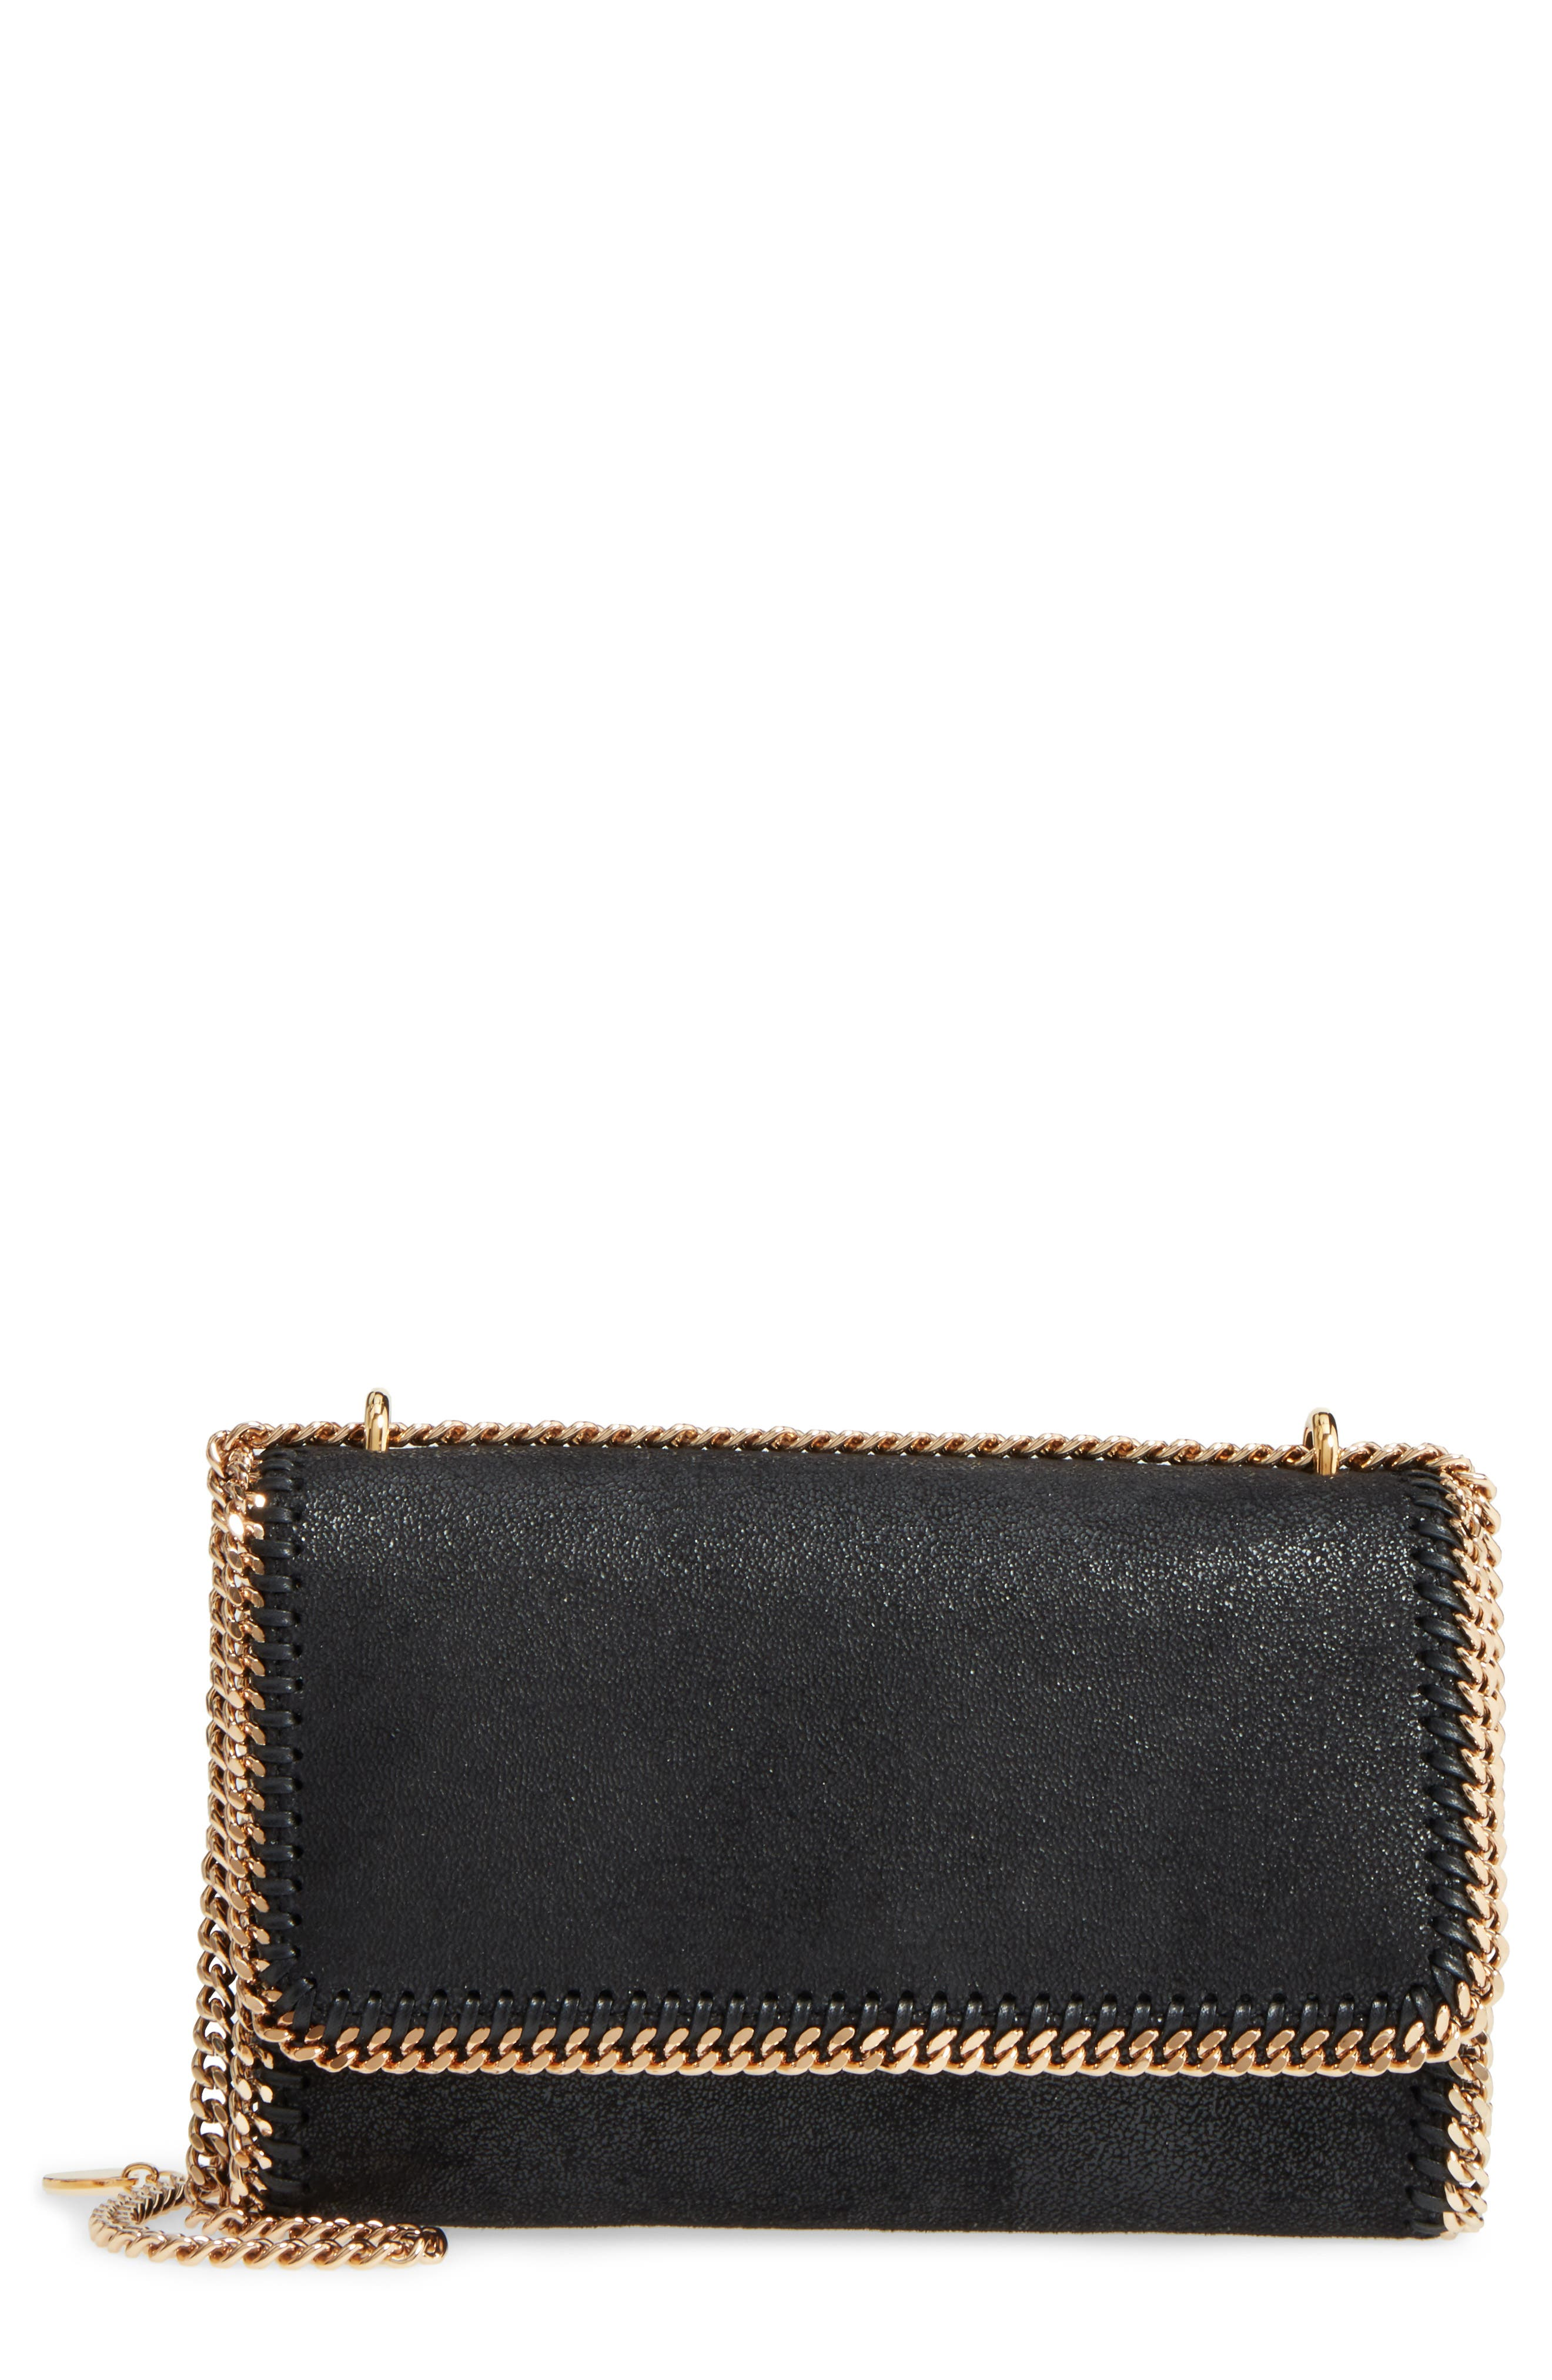 Main Image - Stella McCartney Falabella Shaggy Deer Faux Leather Shoulder Bag